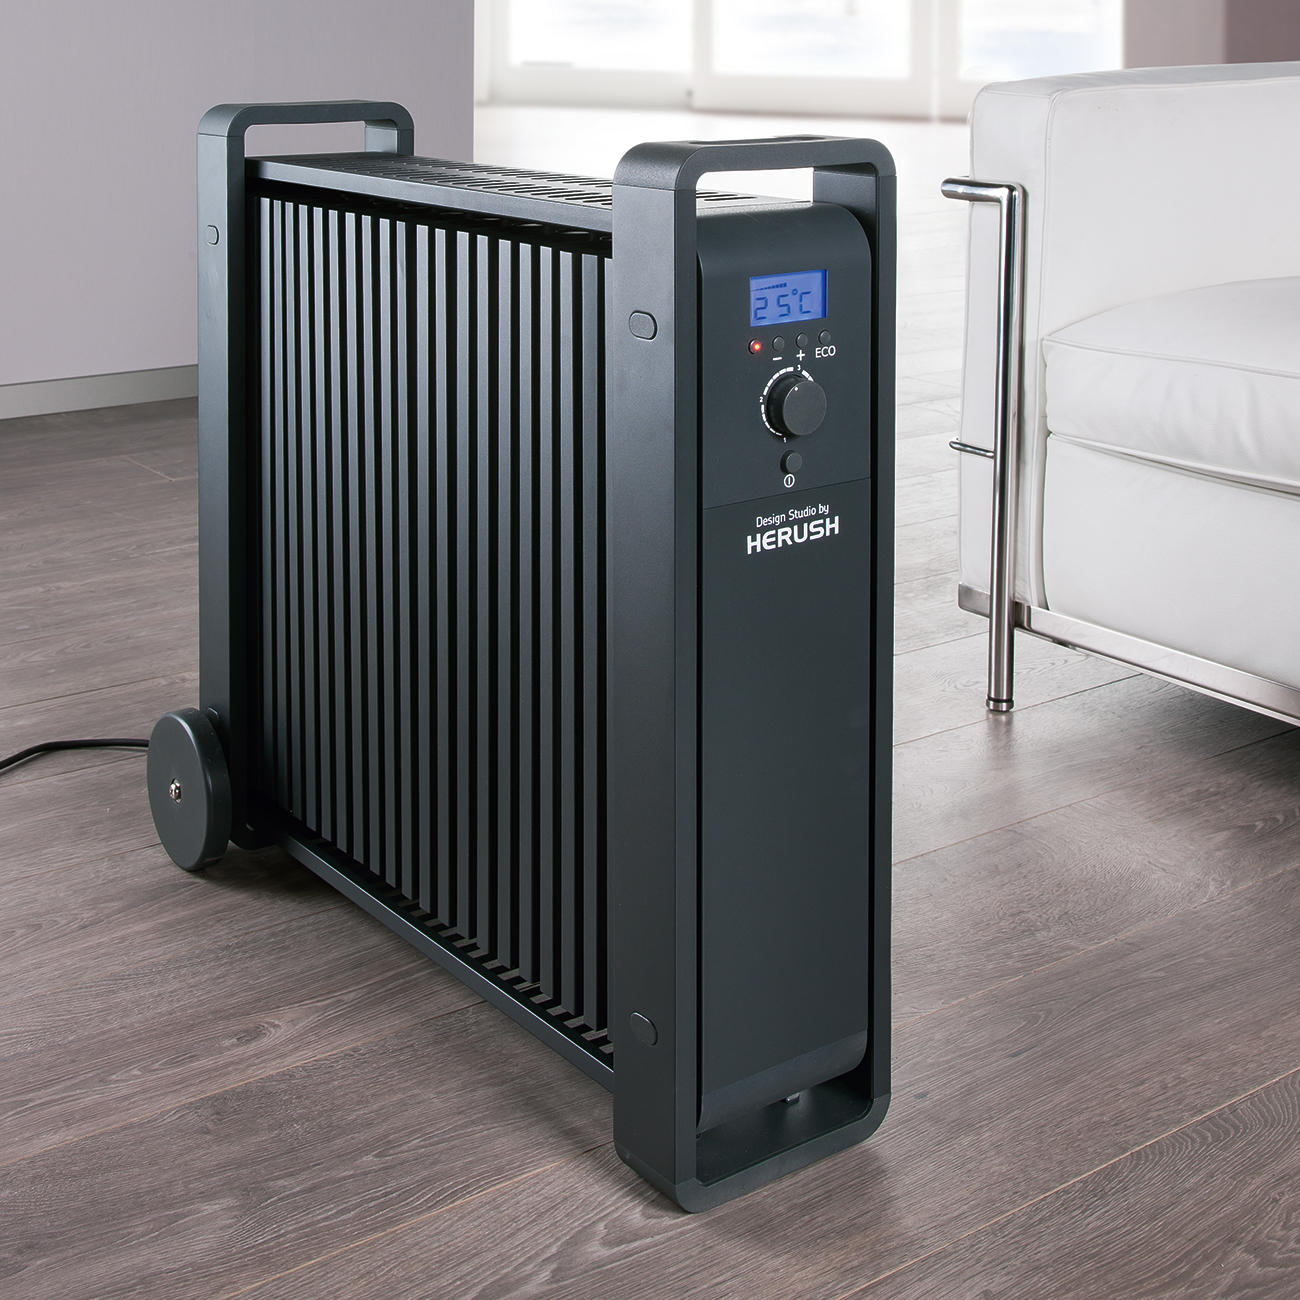 eco k2 design radiator 3 jahre garantie pro idee. Black Bedroom Furniture Sets. Home Design Ideas